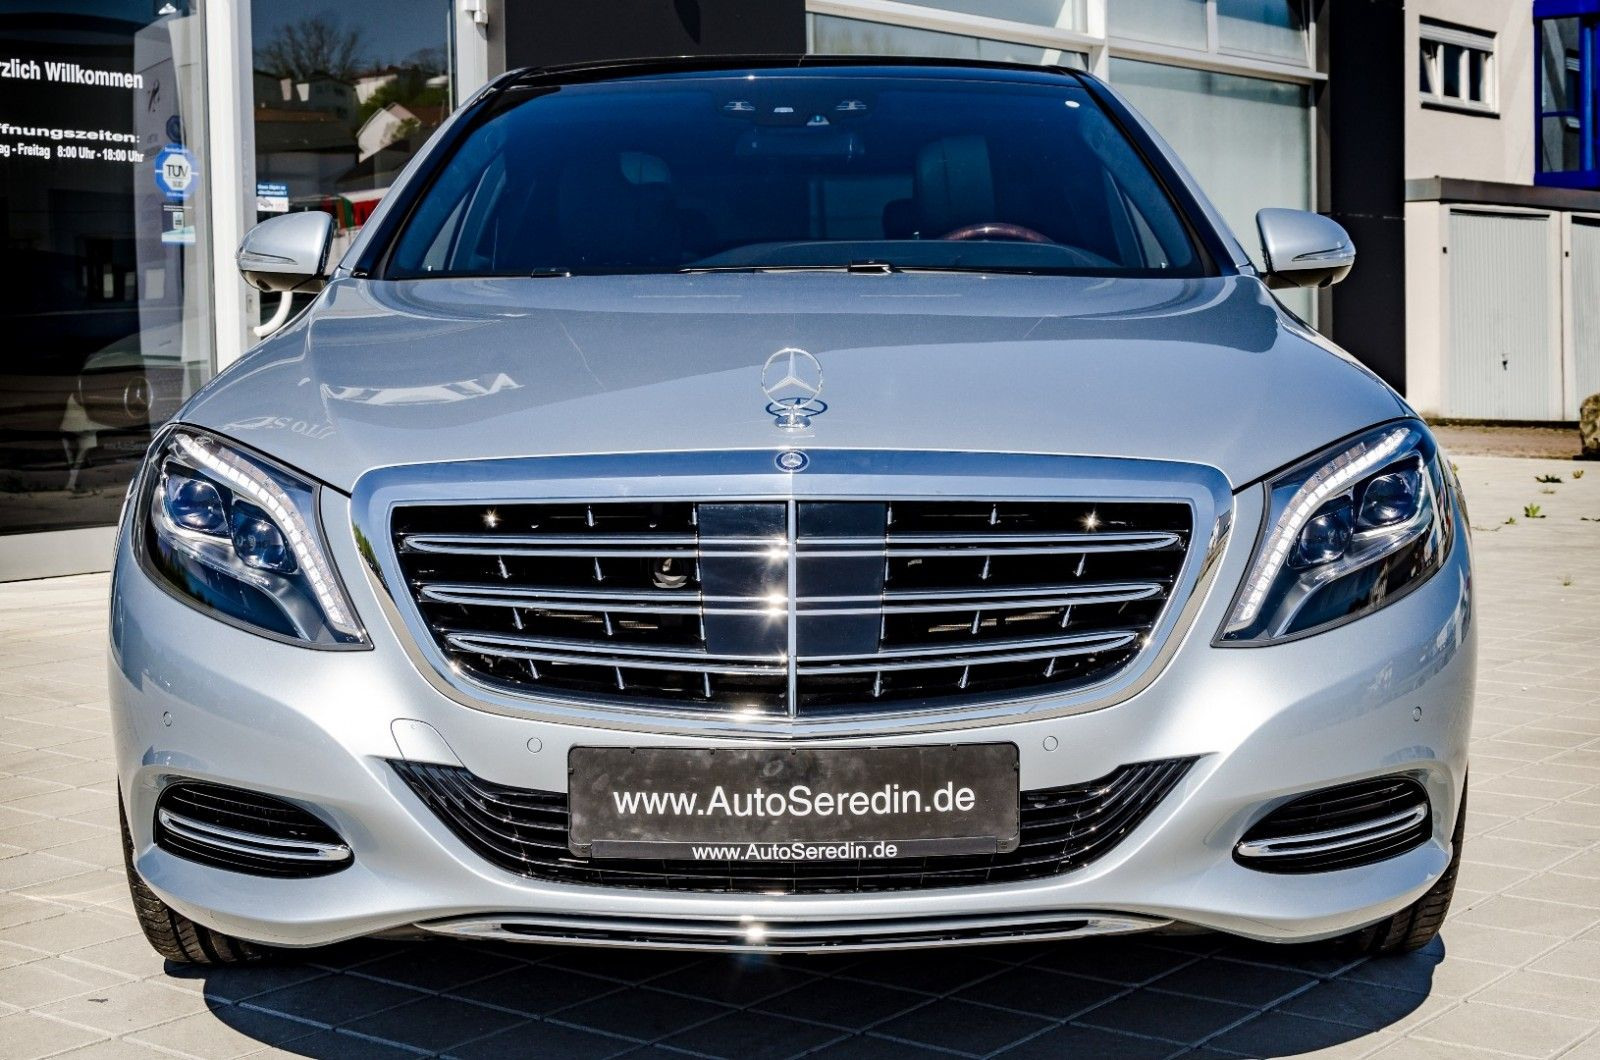 Mercedes Benz S 600 Maybach Schmiederader Fond Tv Stock Export Price 158 270 Stosk L565 Fuel Consumption In Town Mit Bildern Mercedes Benz Benz Mercedes